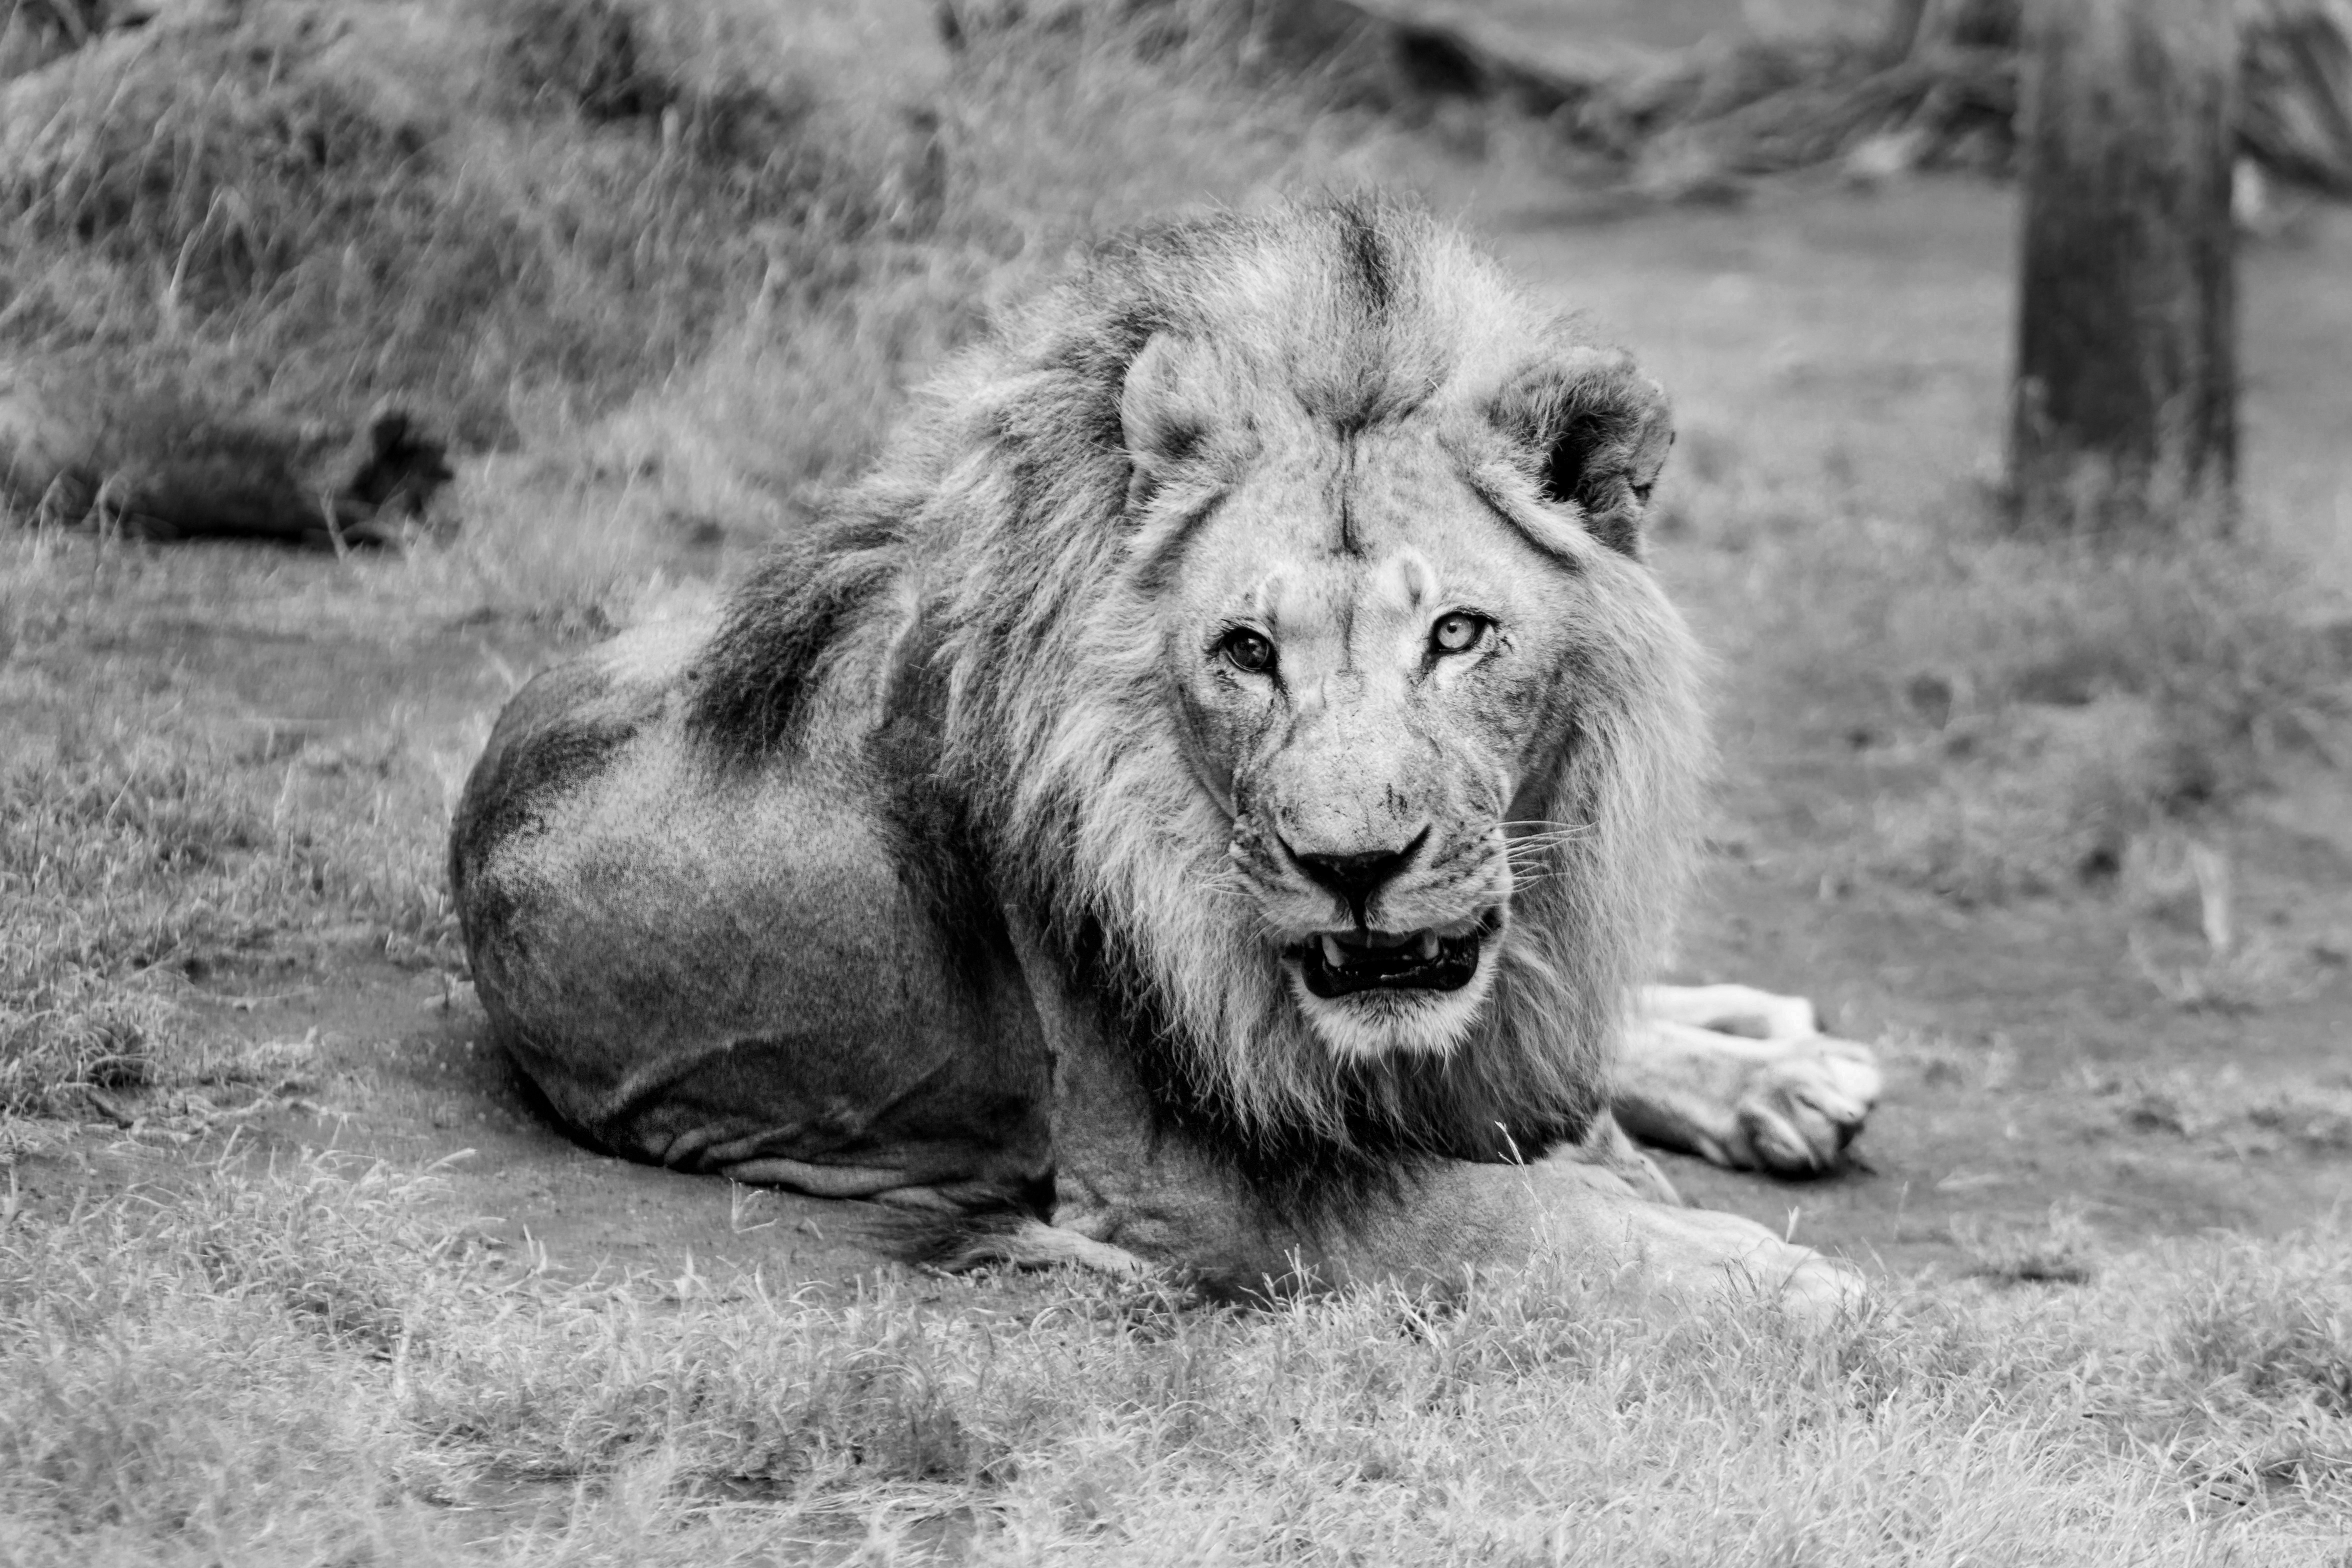 Quotes Wallpaper Hd Black And White Lion Photograph 183 Free Stock Photo